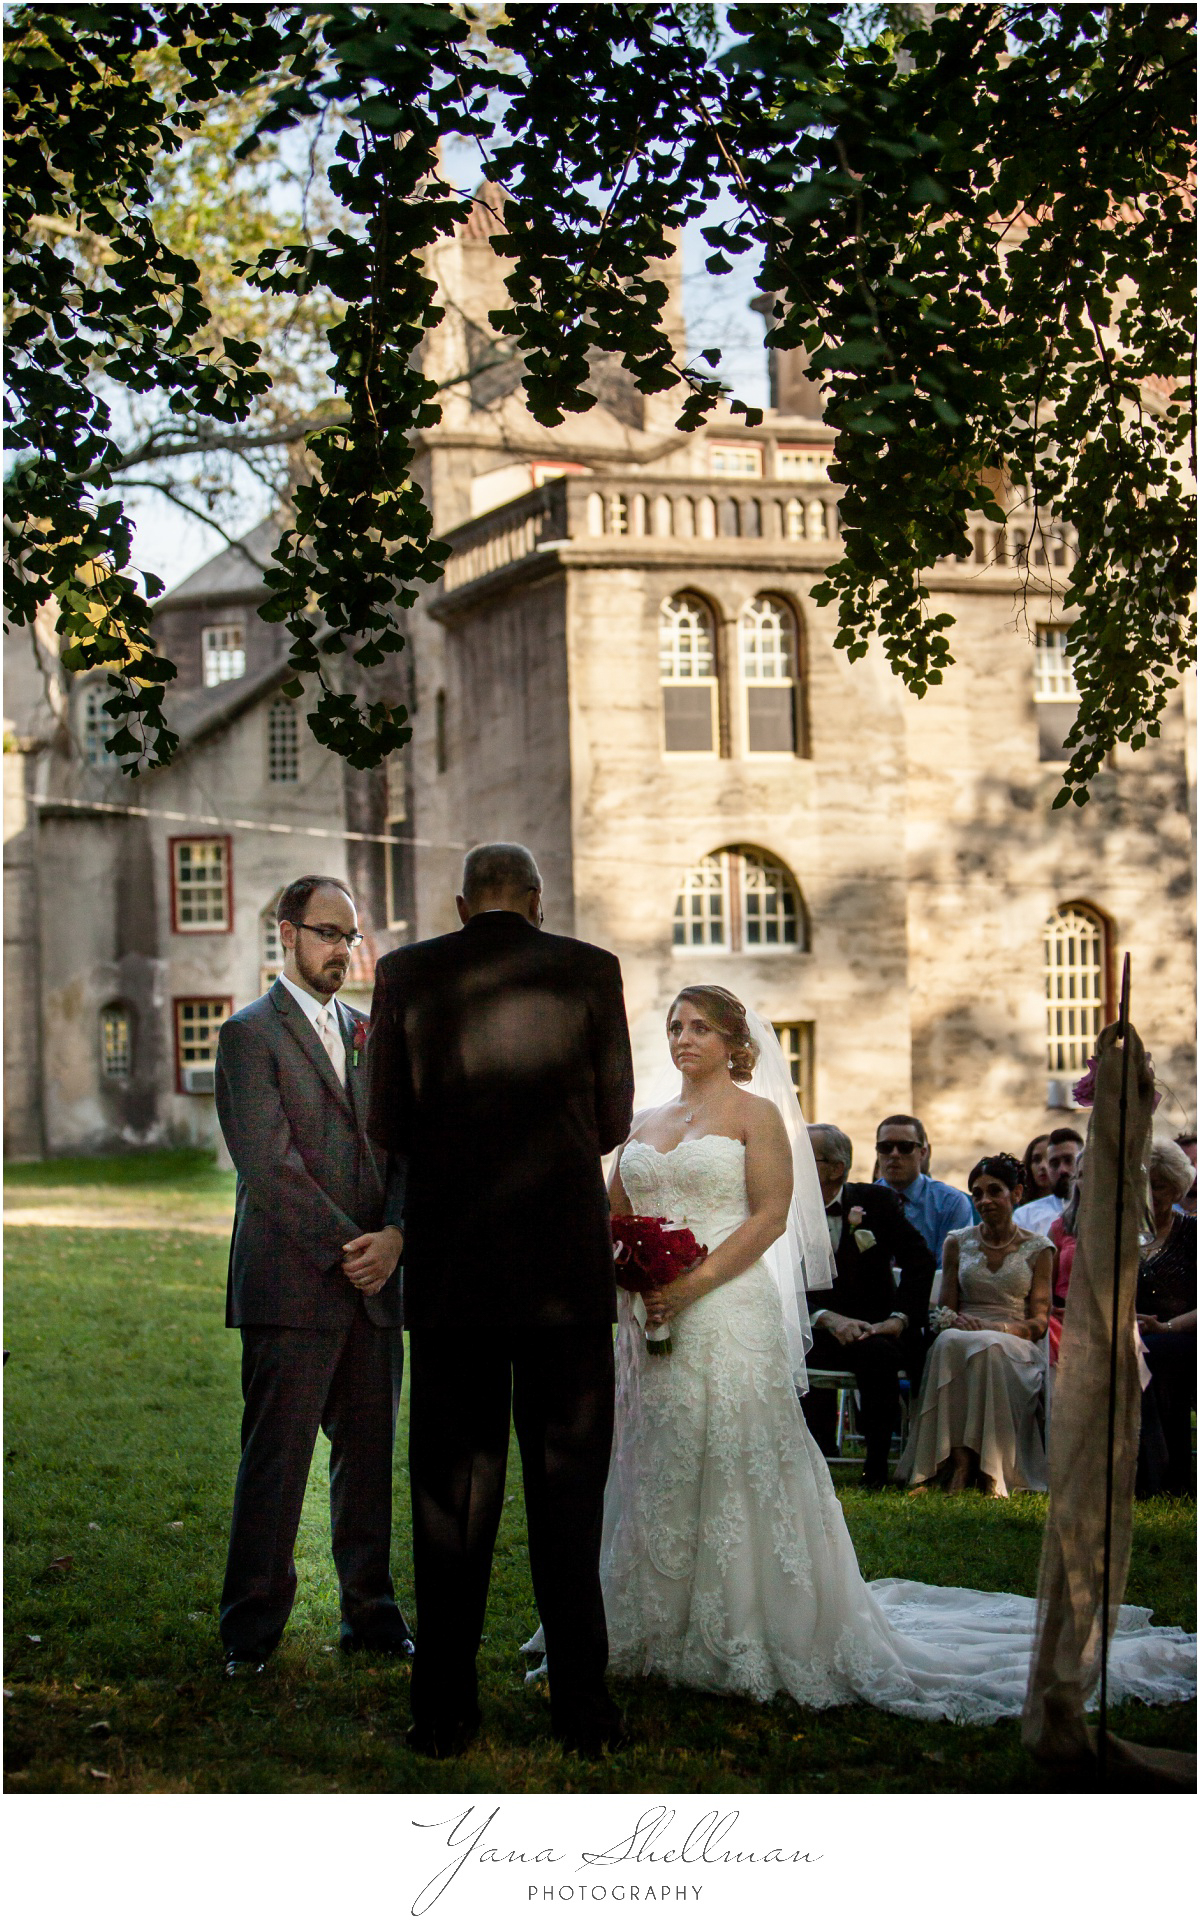 Fonthill Castle Estate Wedding Photos by West Chester Wedding Photographers - Stacey+Steve Wedding Photos